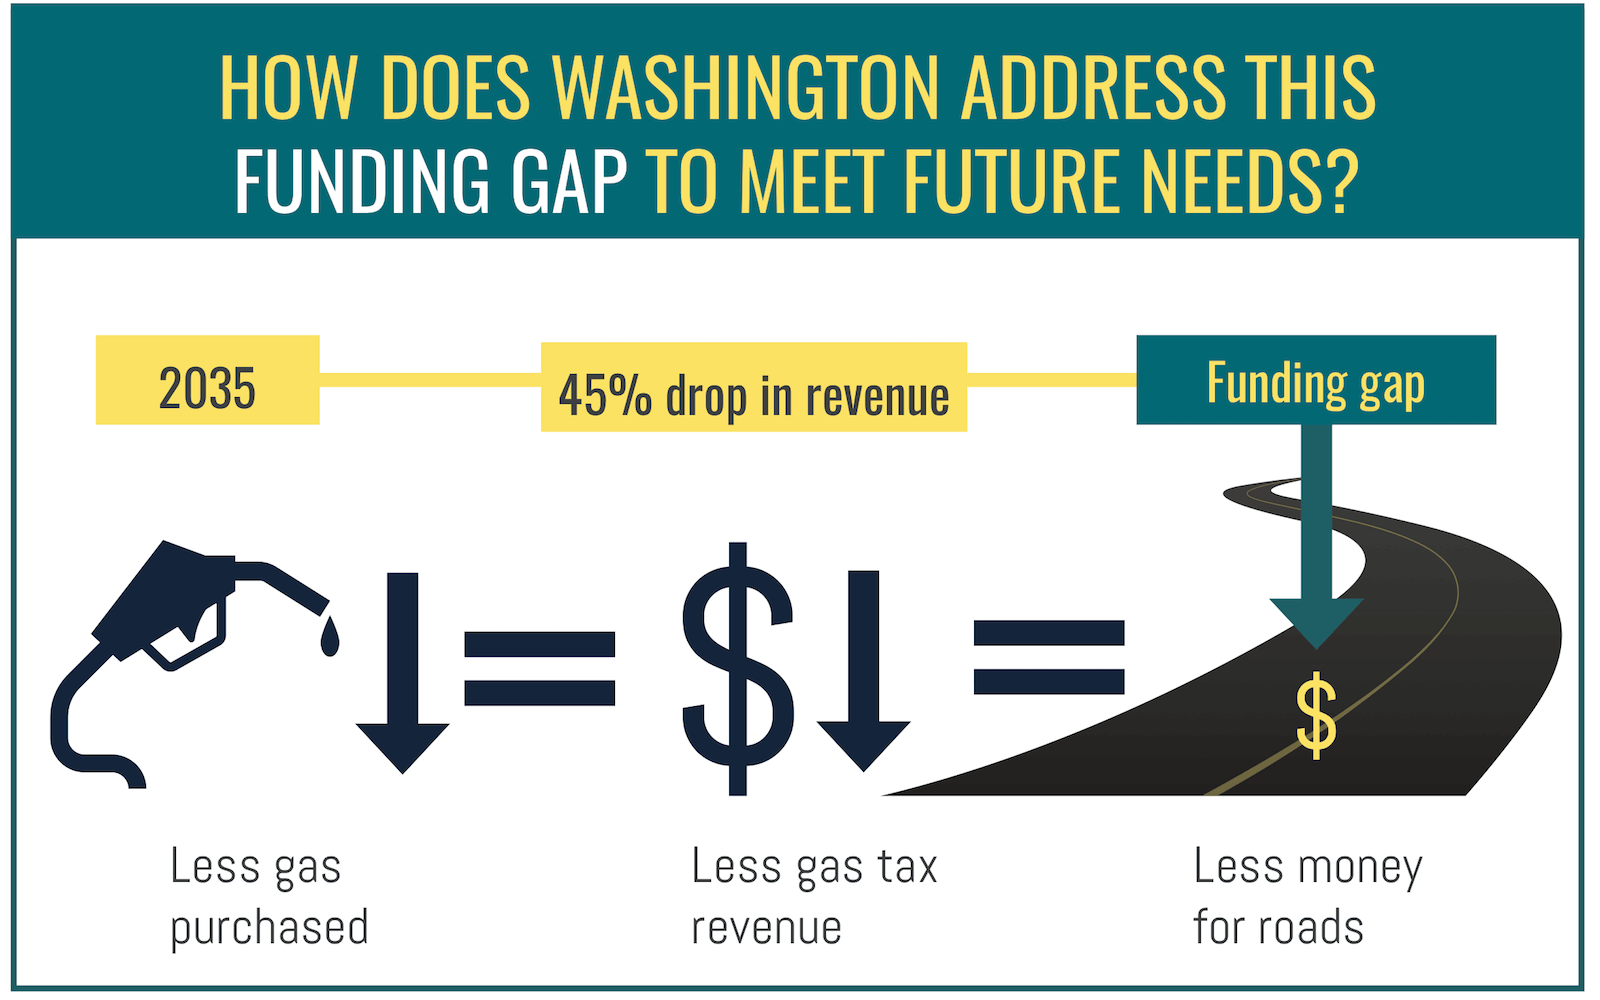 How does washington address this funding gap to meet future needs?